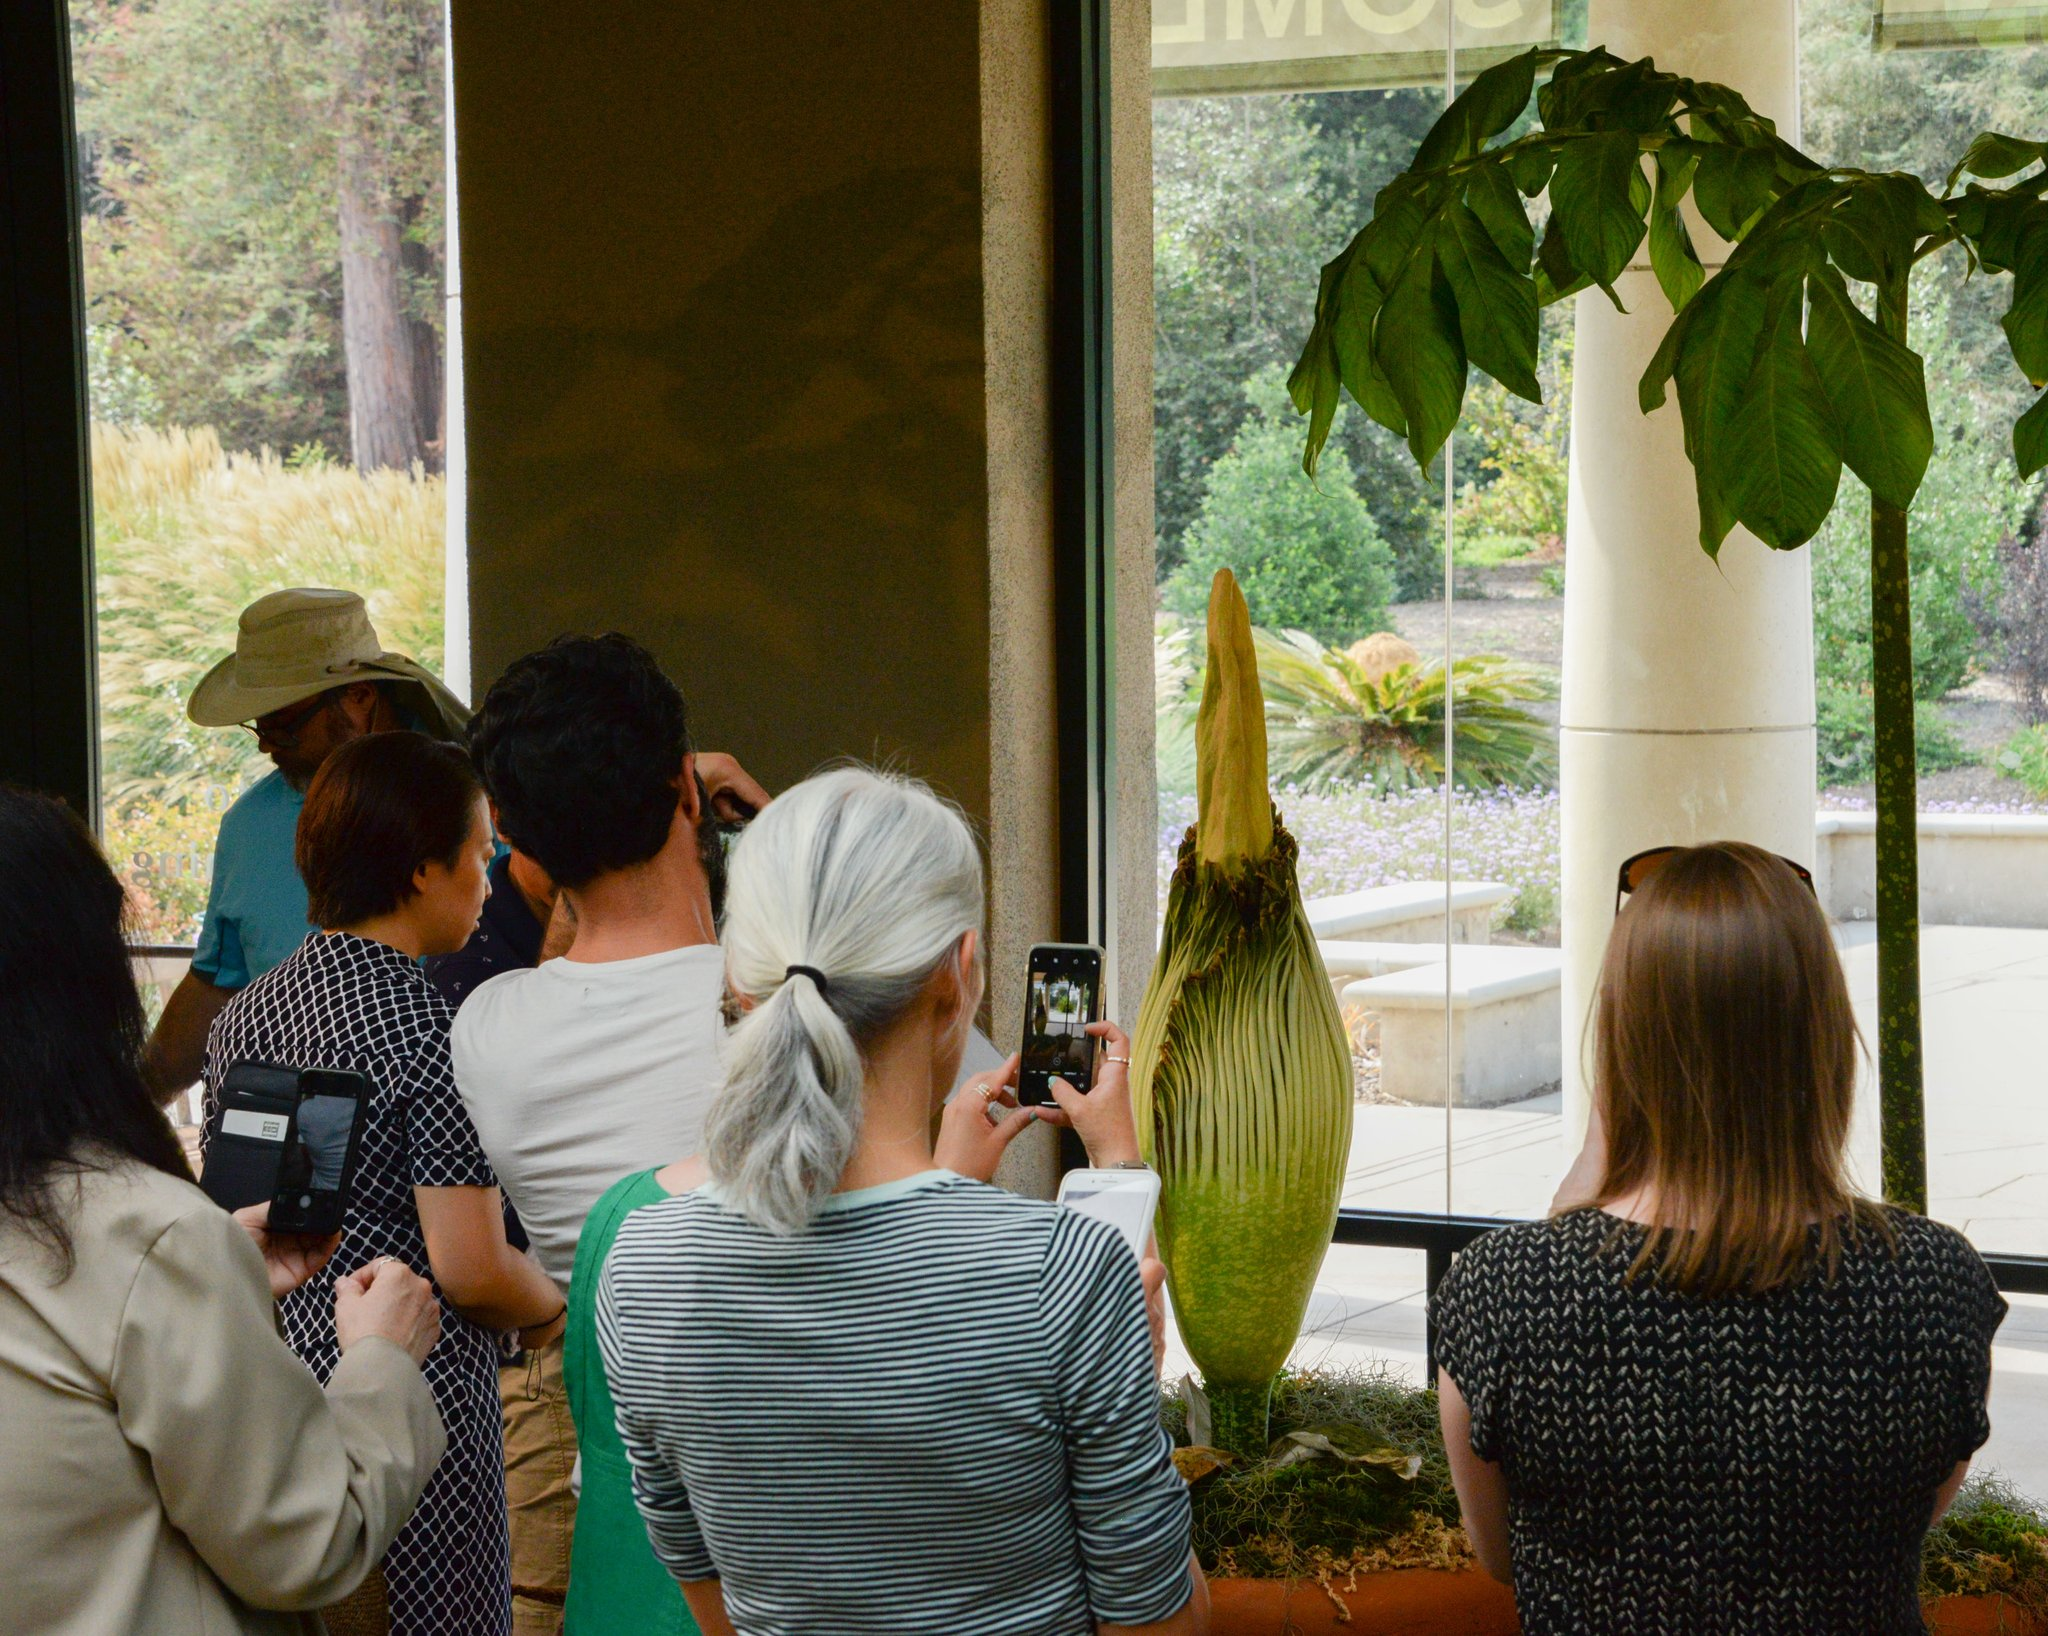 A view of the 44-inch corpse flower at Huntington Library in California.